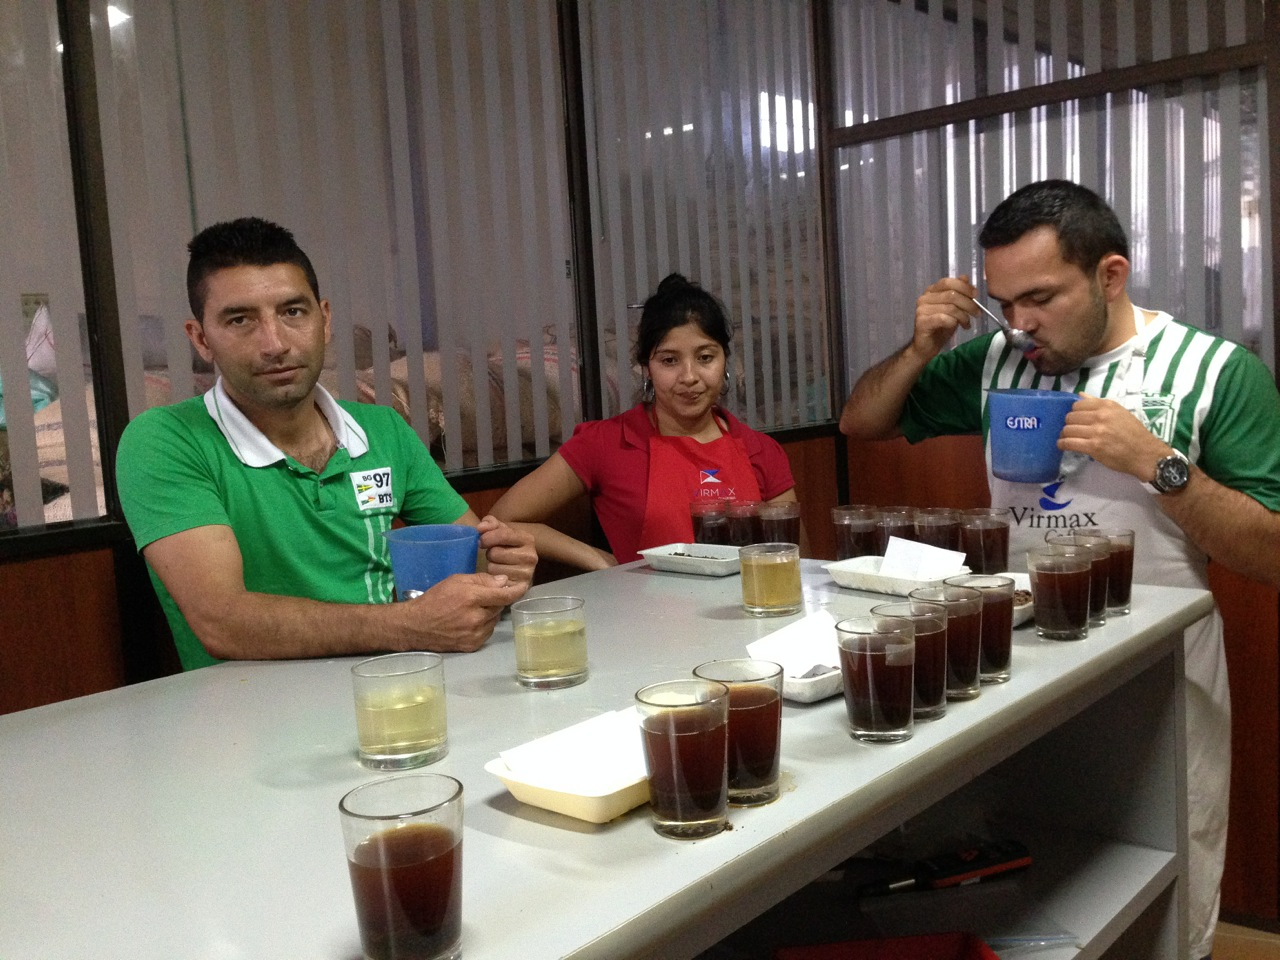 Eider Perdomo Claros (far left) is always cupping his coffee with the Virmax-team when he submits at the Virmax warehouse in Pitalito, Huila. More than 80% of his production is 86+ pts.